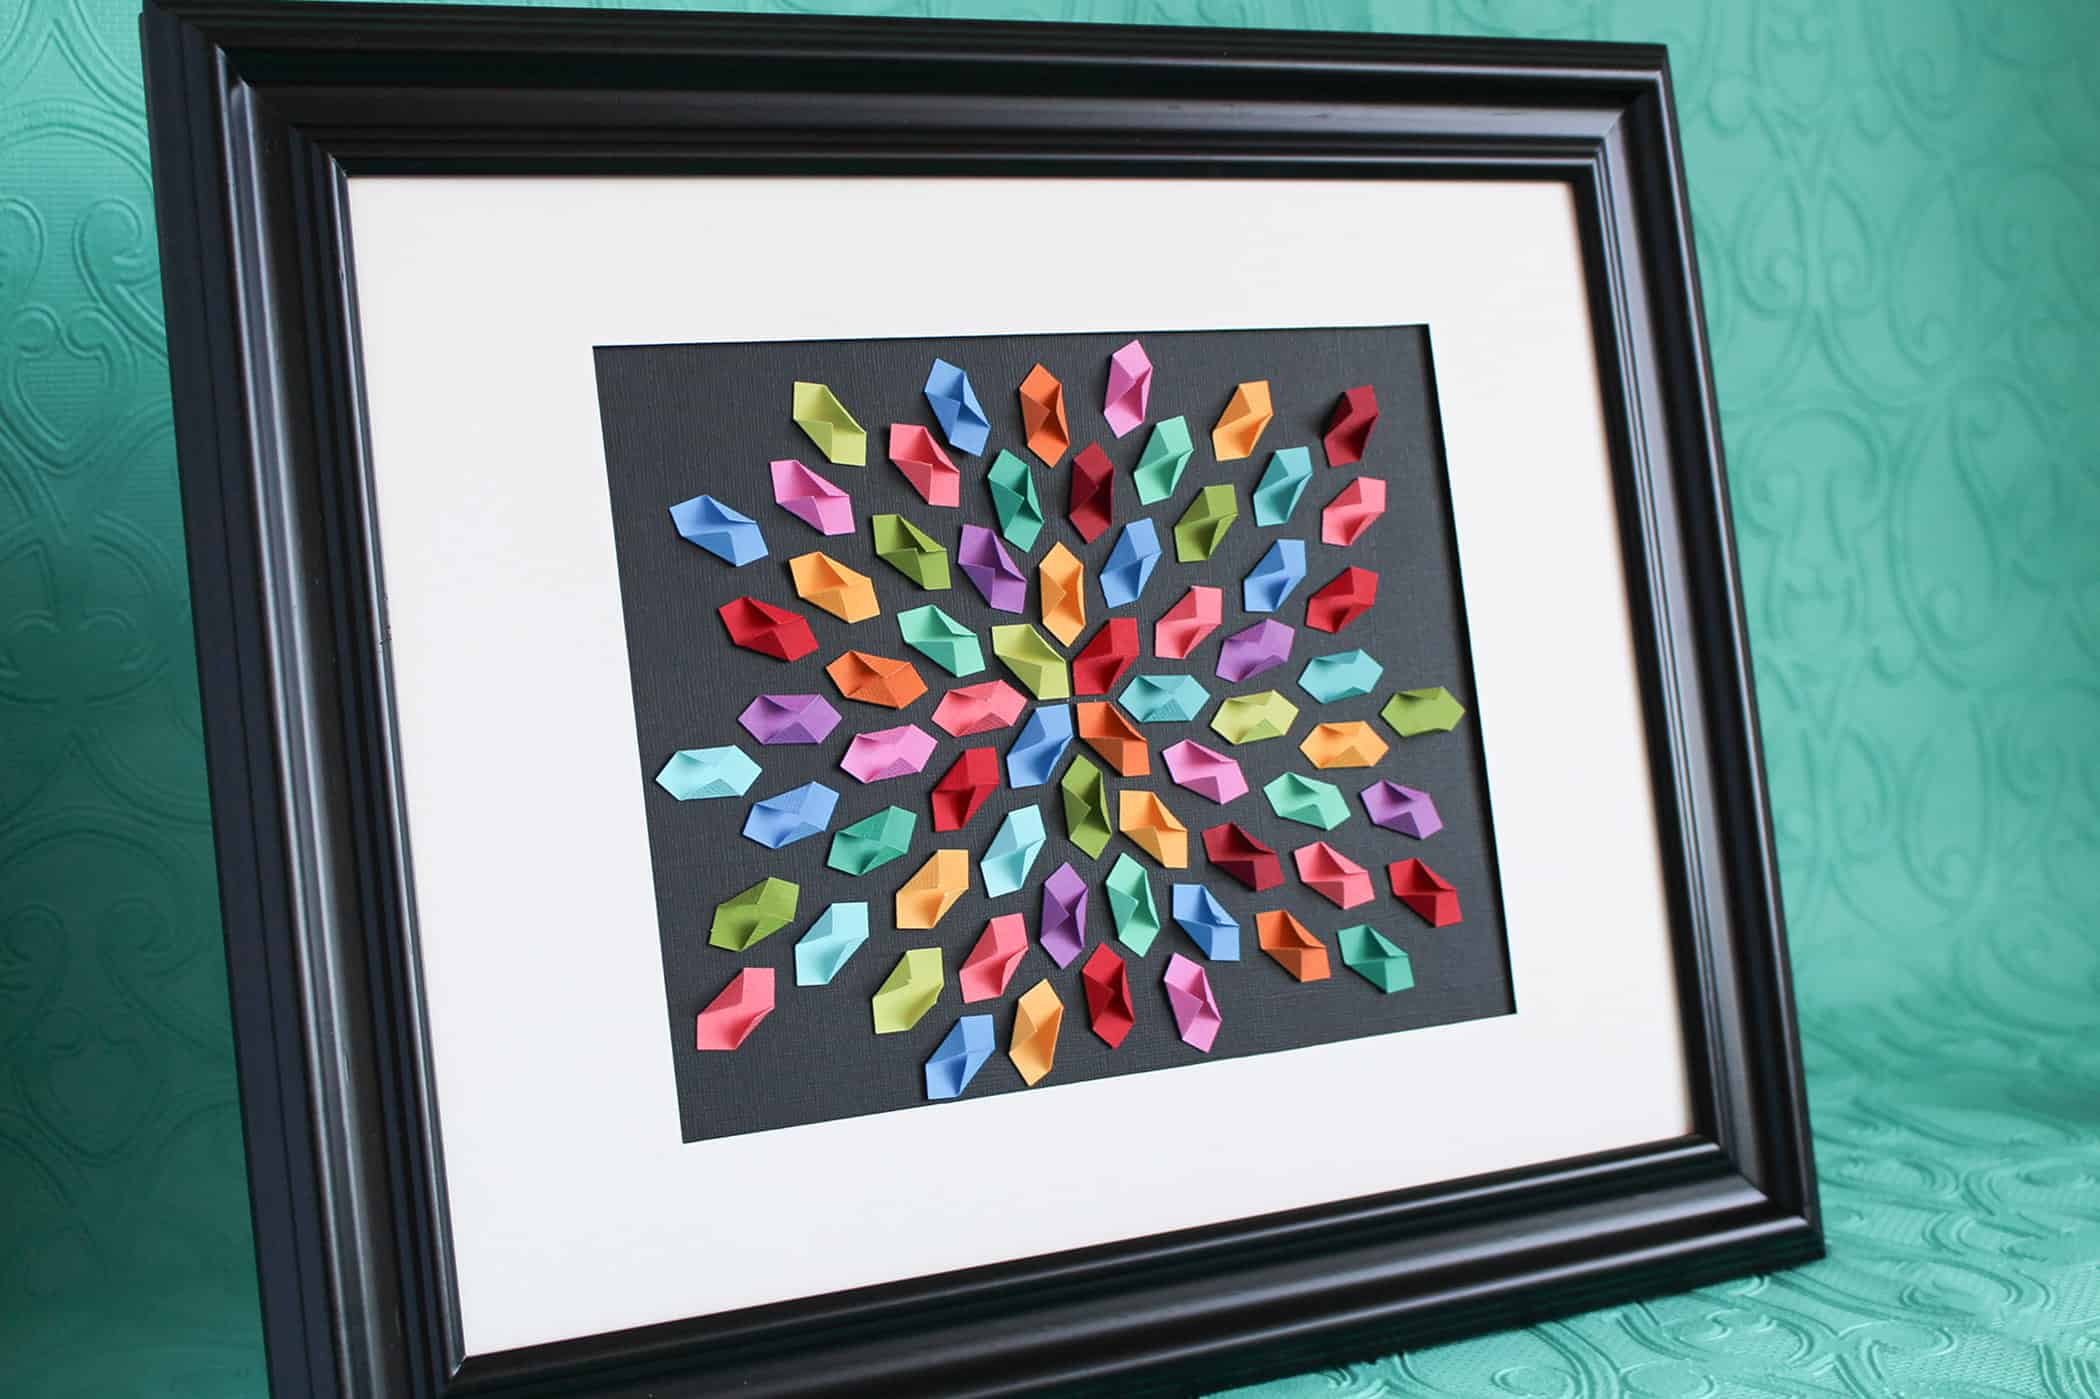 Colourful folded paper kaleidoscope art